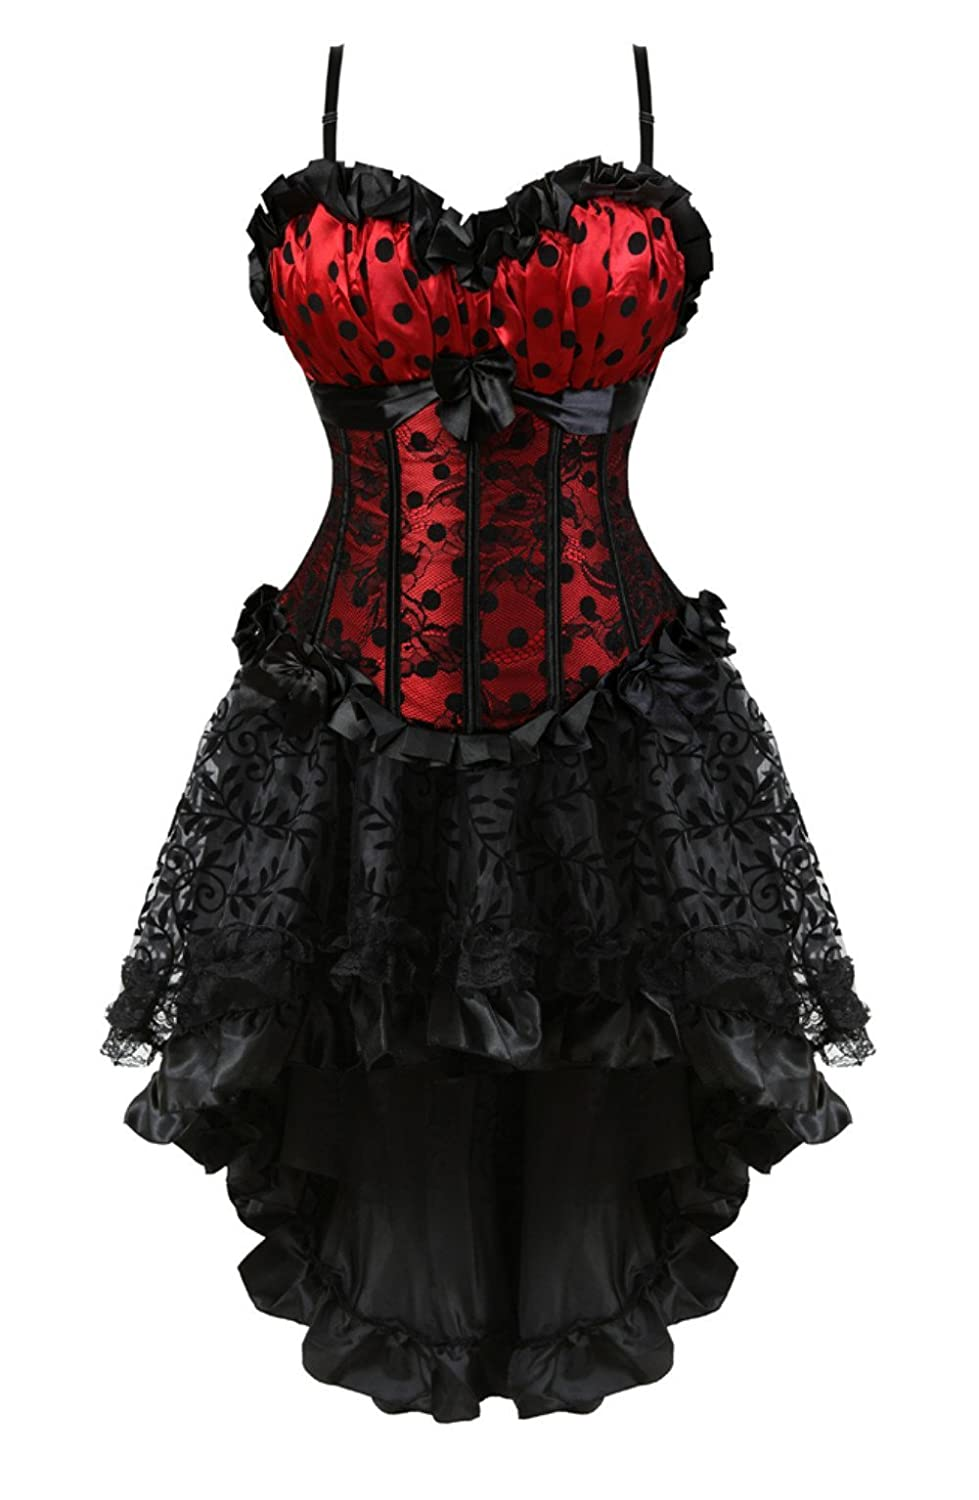 2796 Red Grebrafan Steampunk Corset Skirt with Zipper,Multi Layered High Low Outfits